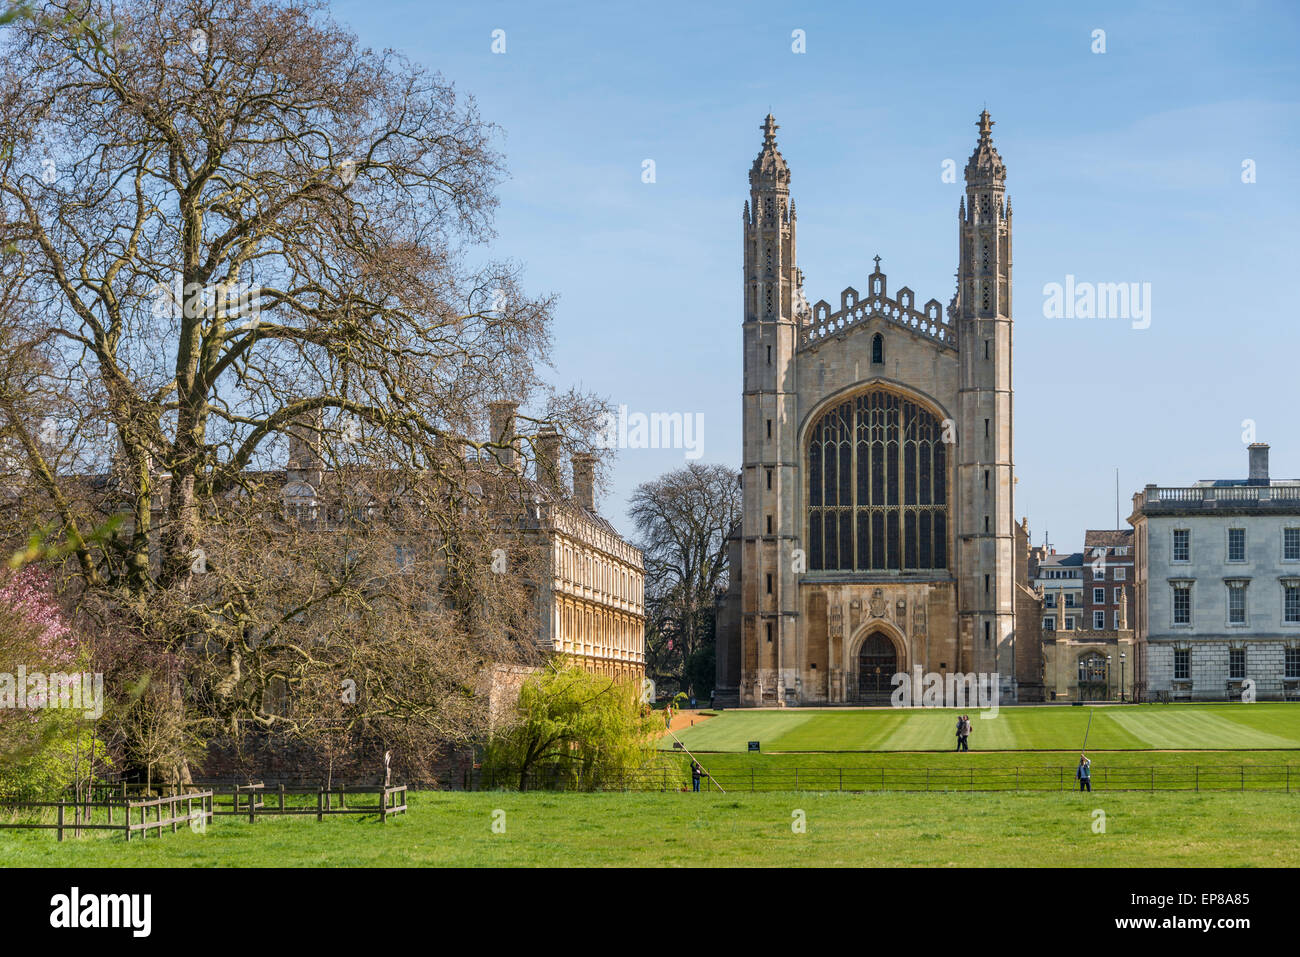 The Chapel of King's College, Cambridge University viewed from The Backs, being the back of the colleges. - Stock Image